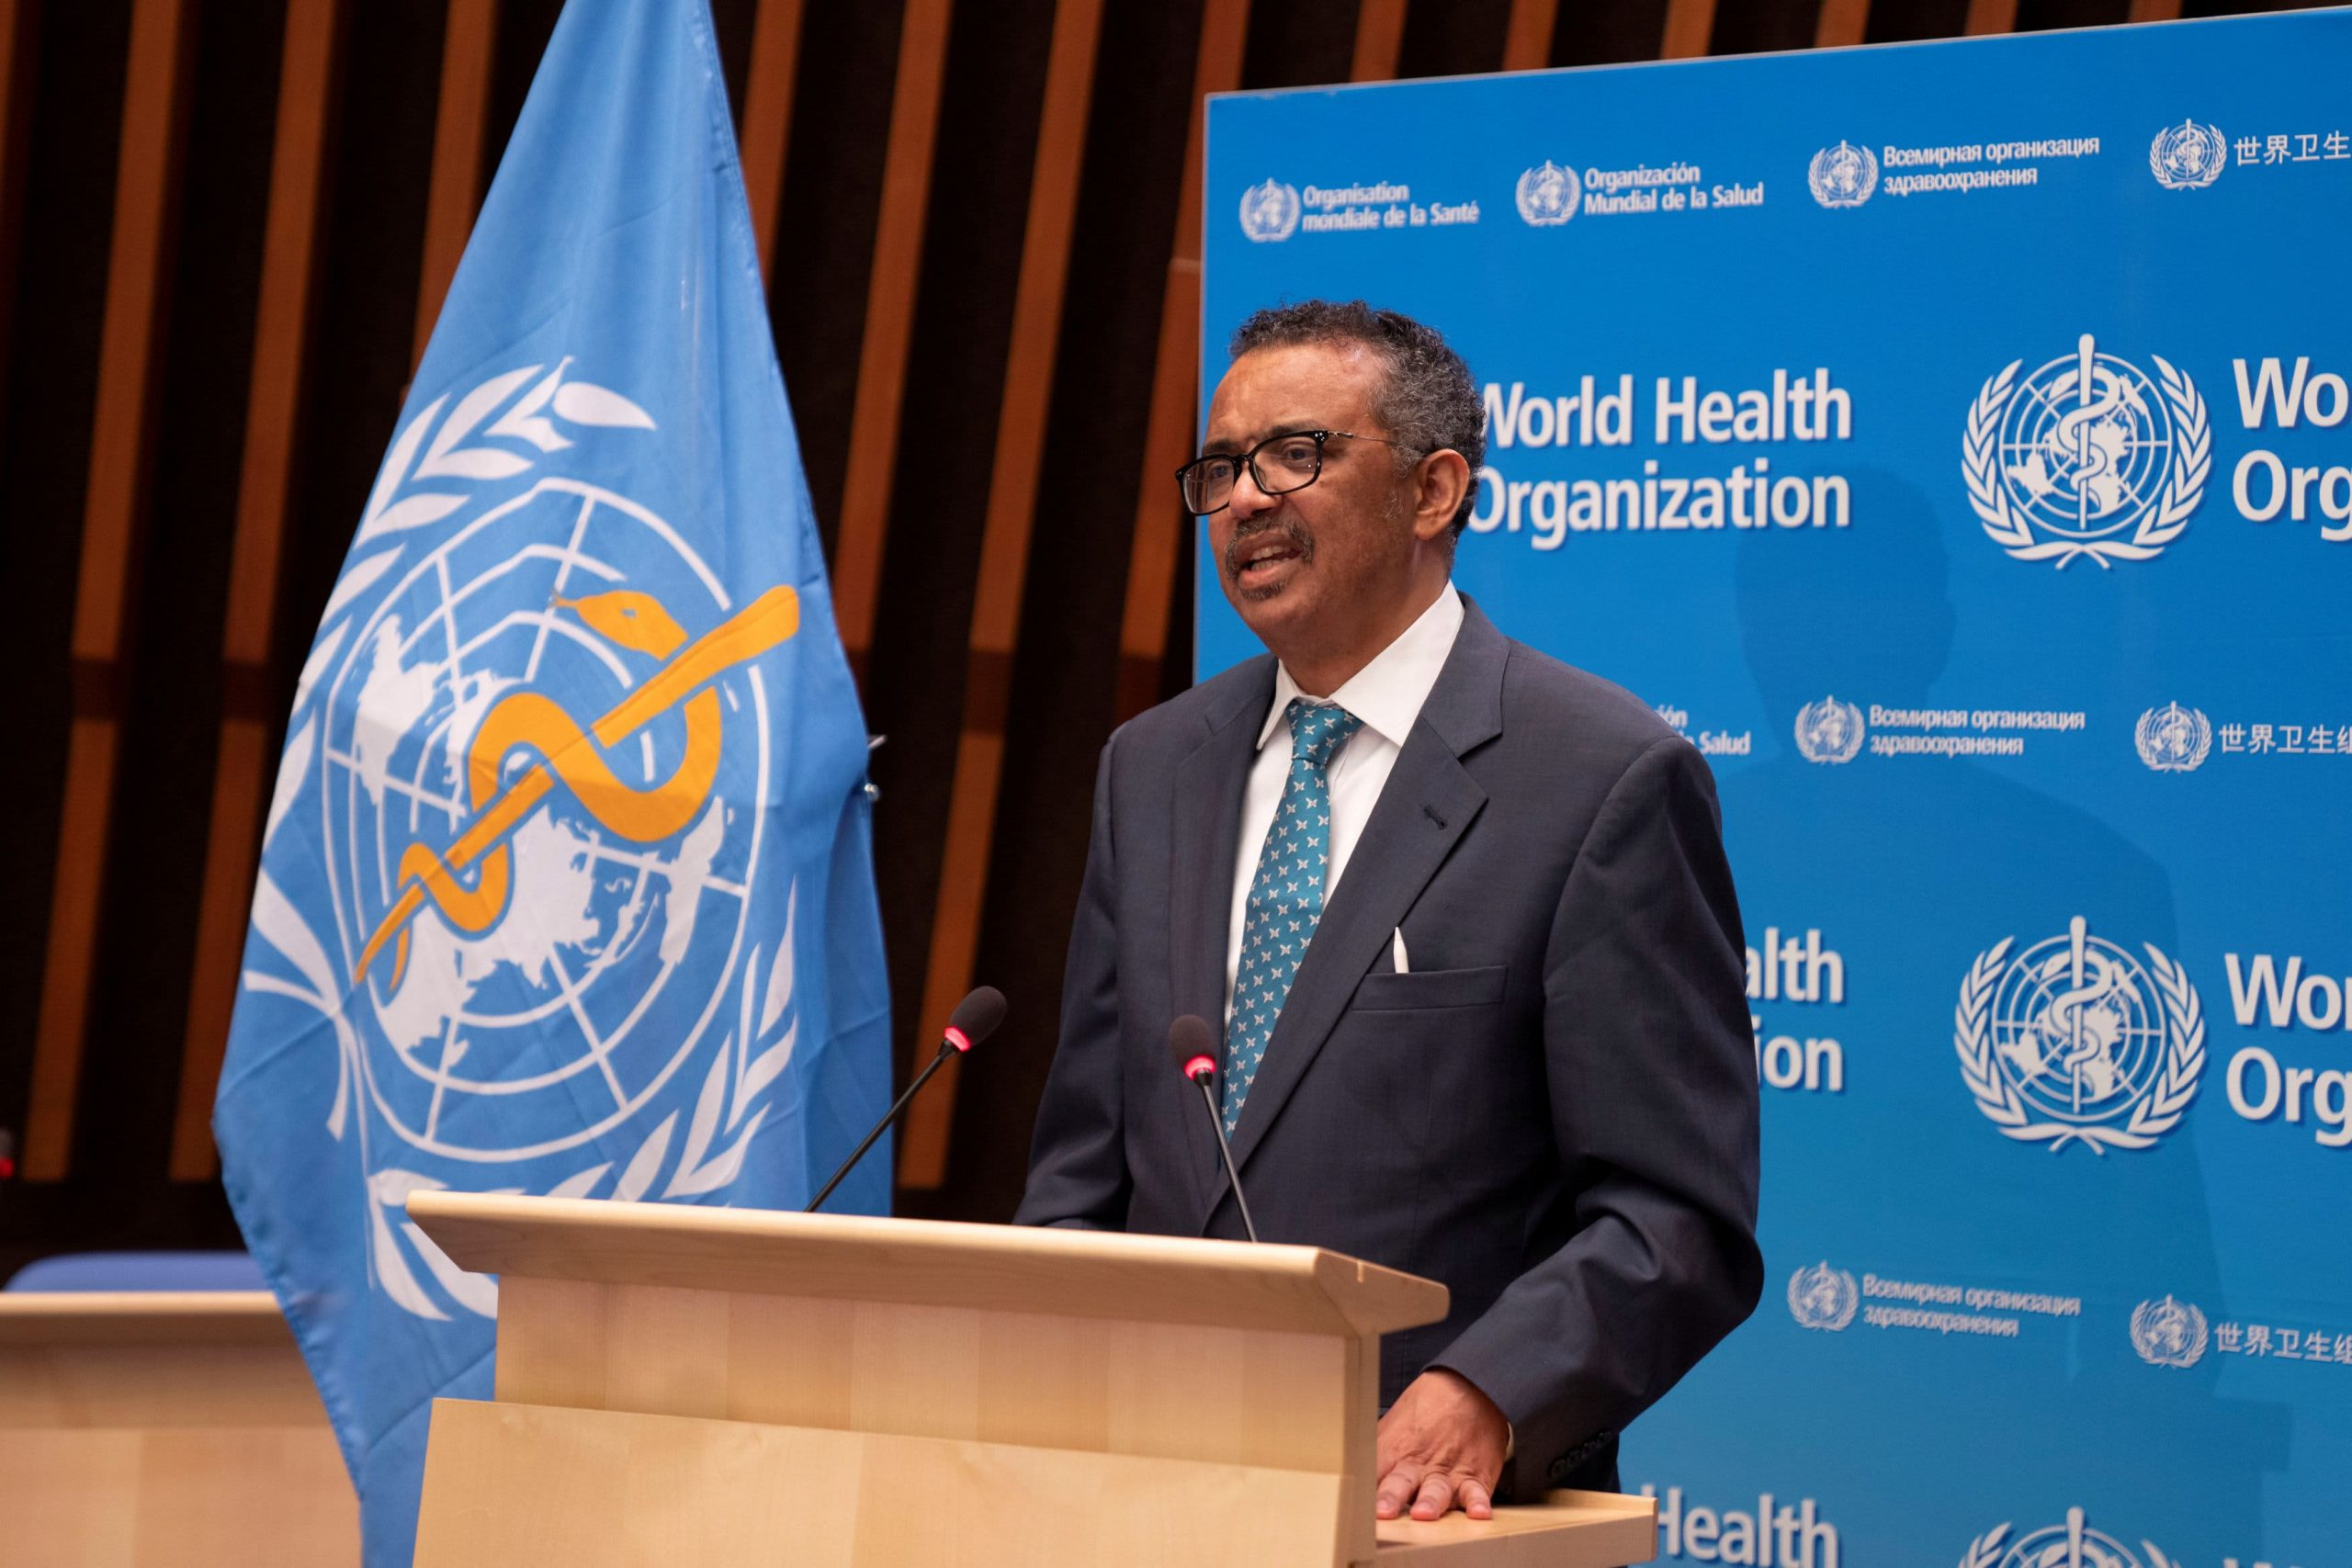 world-health-organization-holds-press-conference-on-covid-pandemic